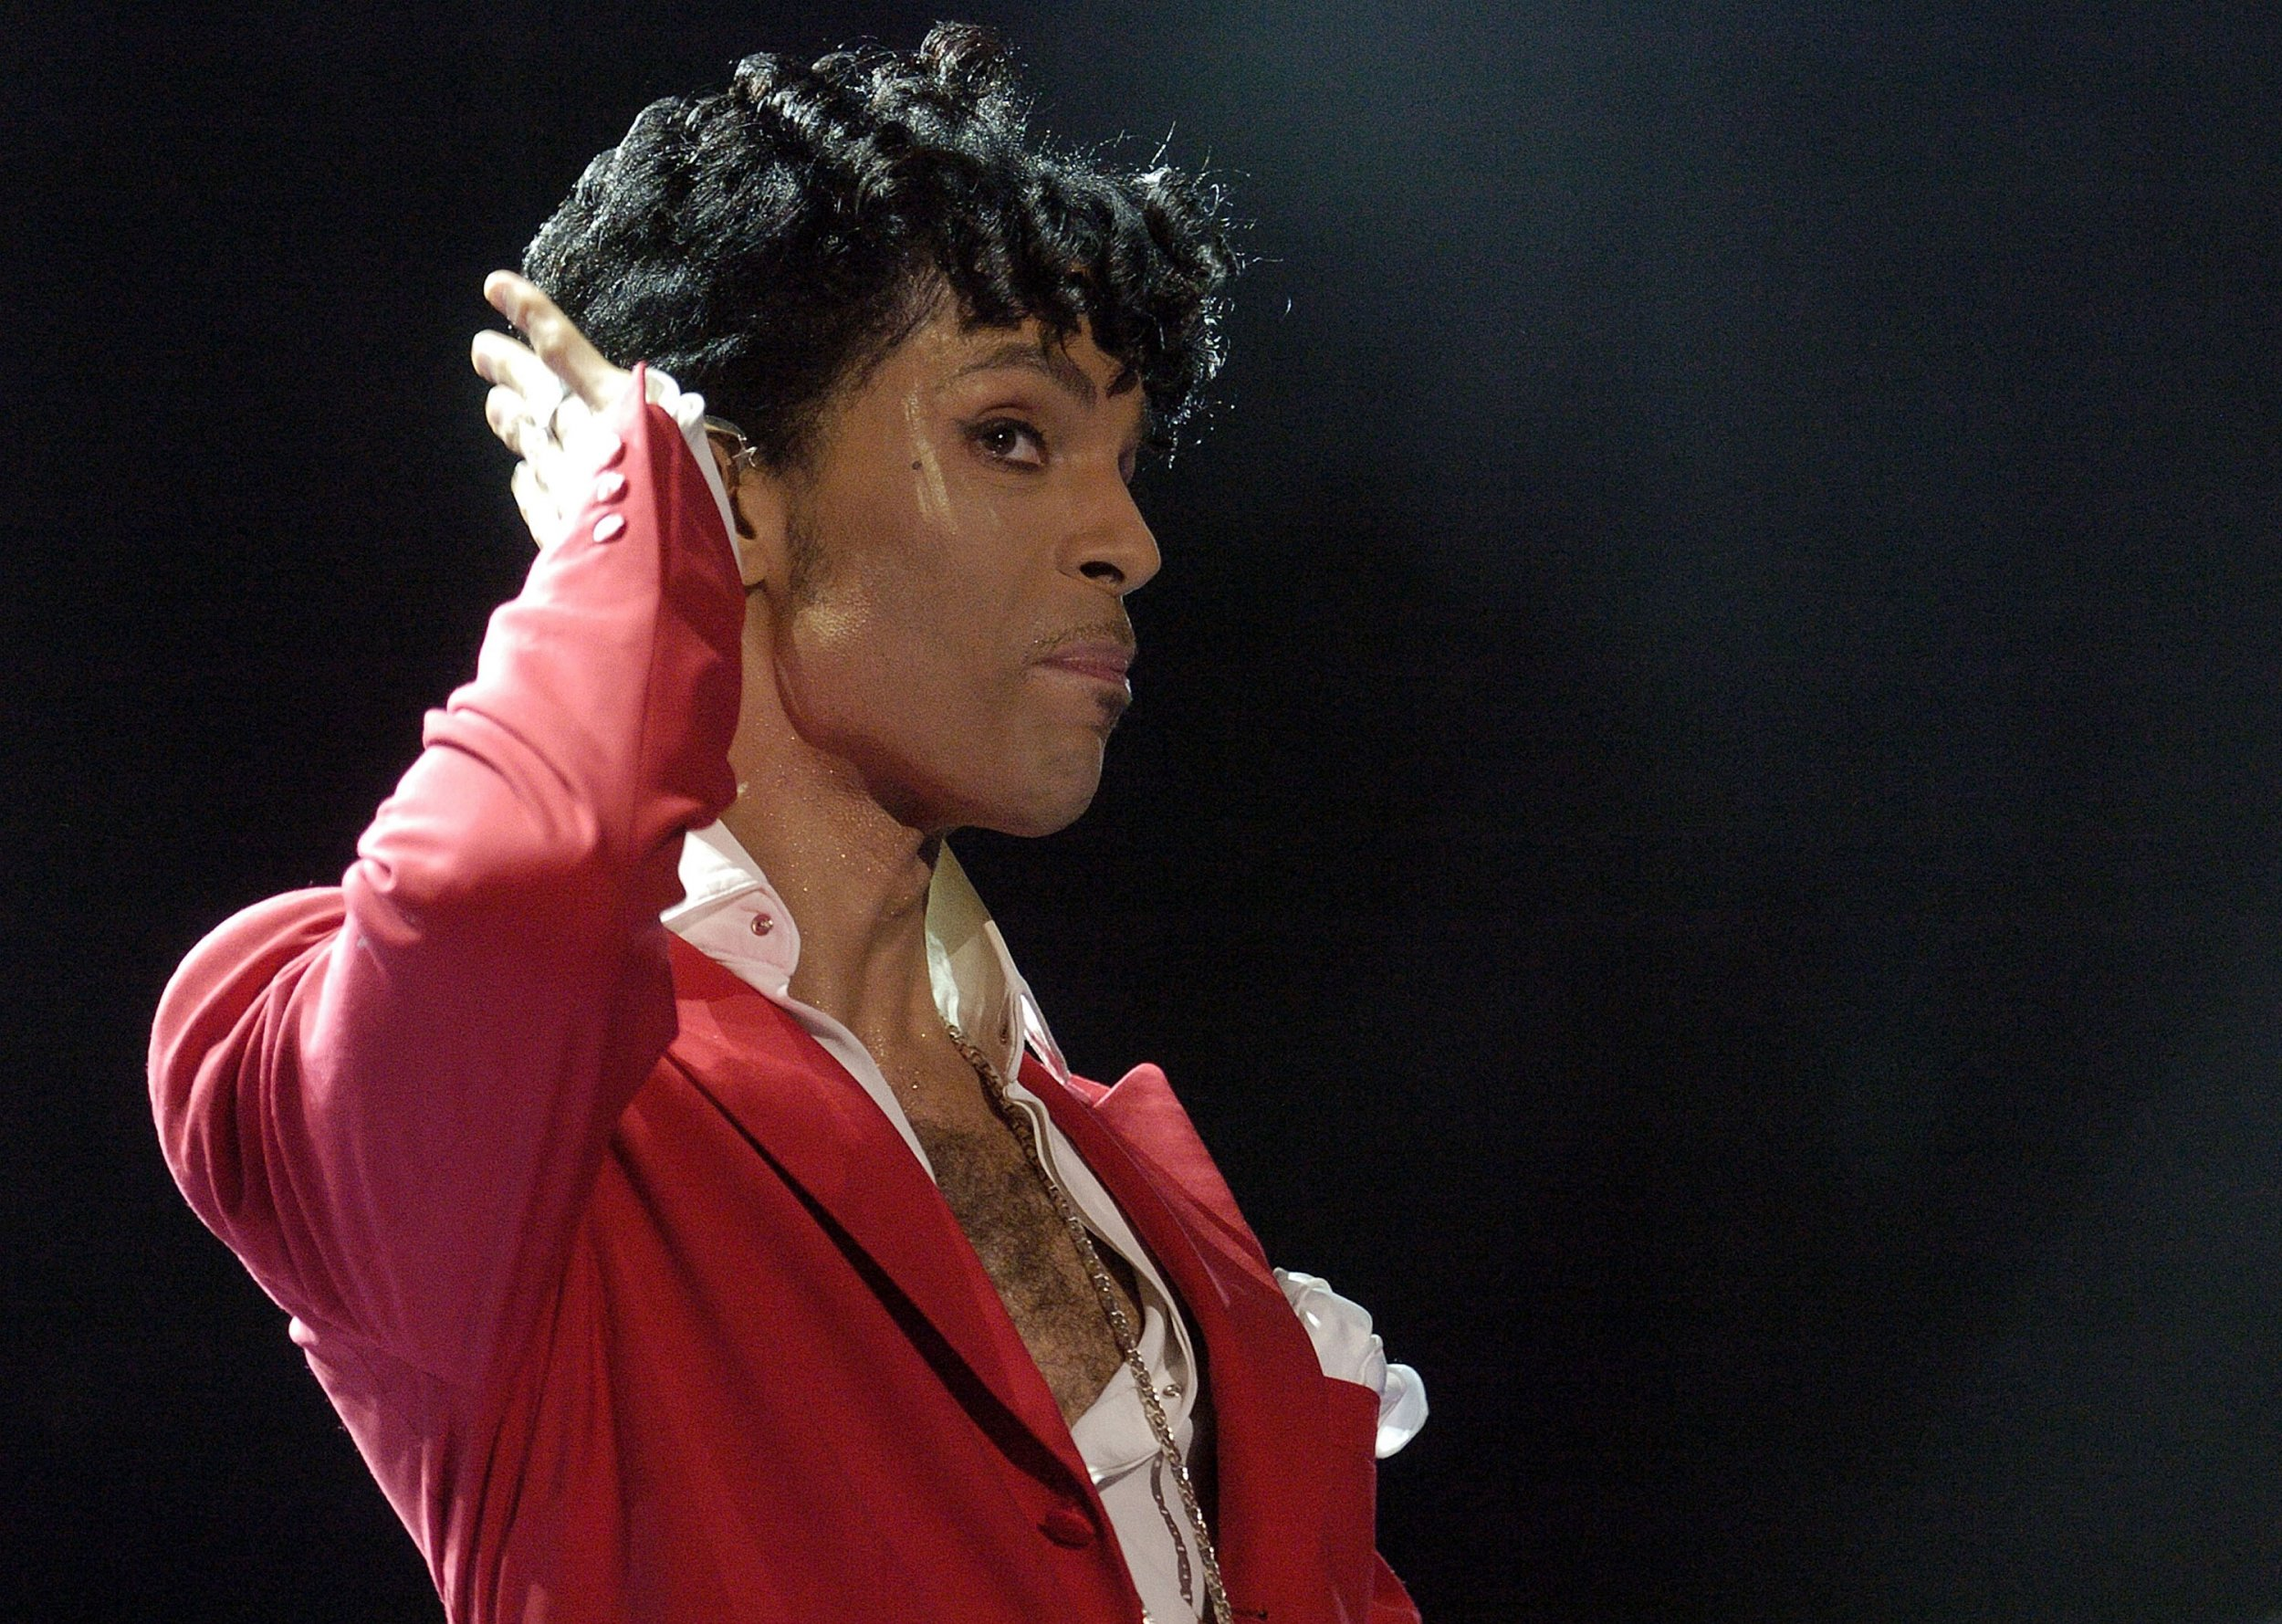 Prince in 2004